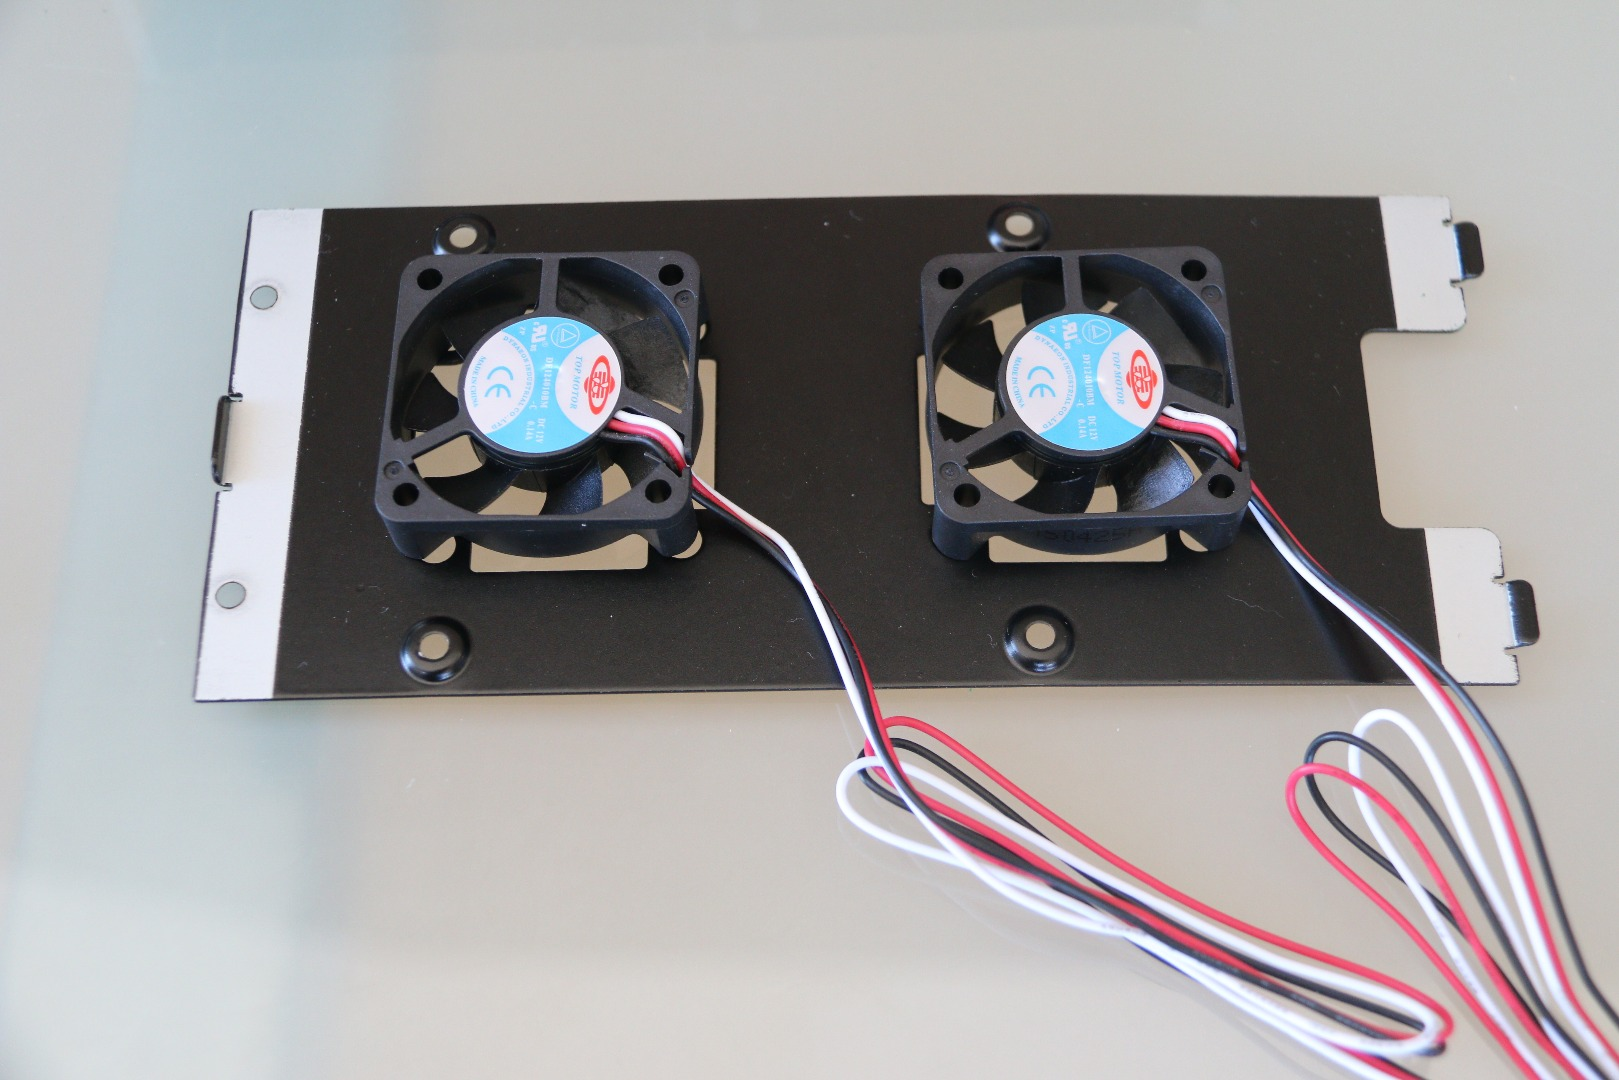 Picture of Install the Intake Fans in the Second Bracket